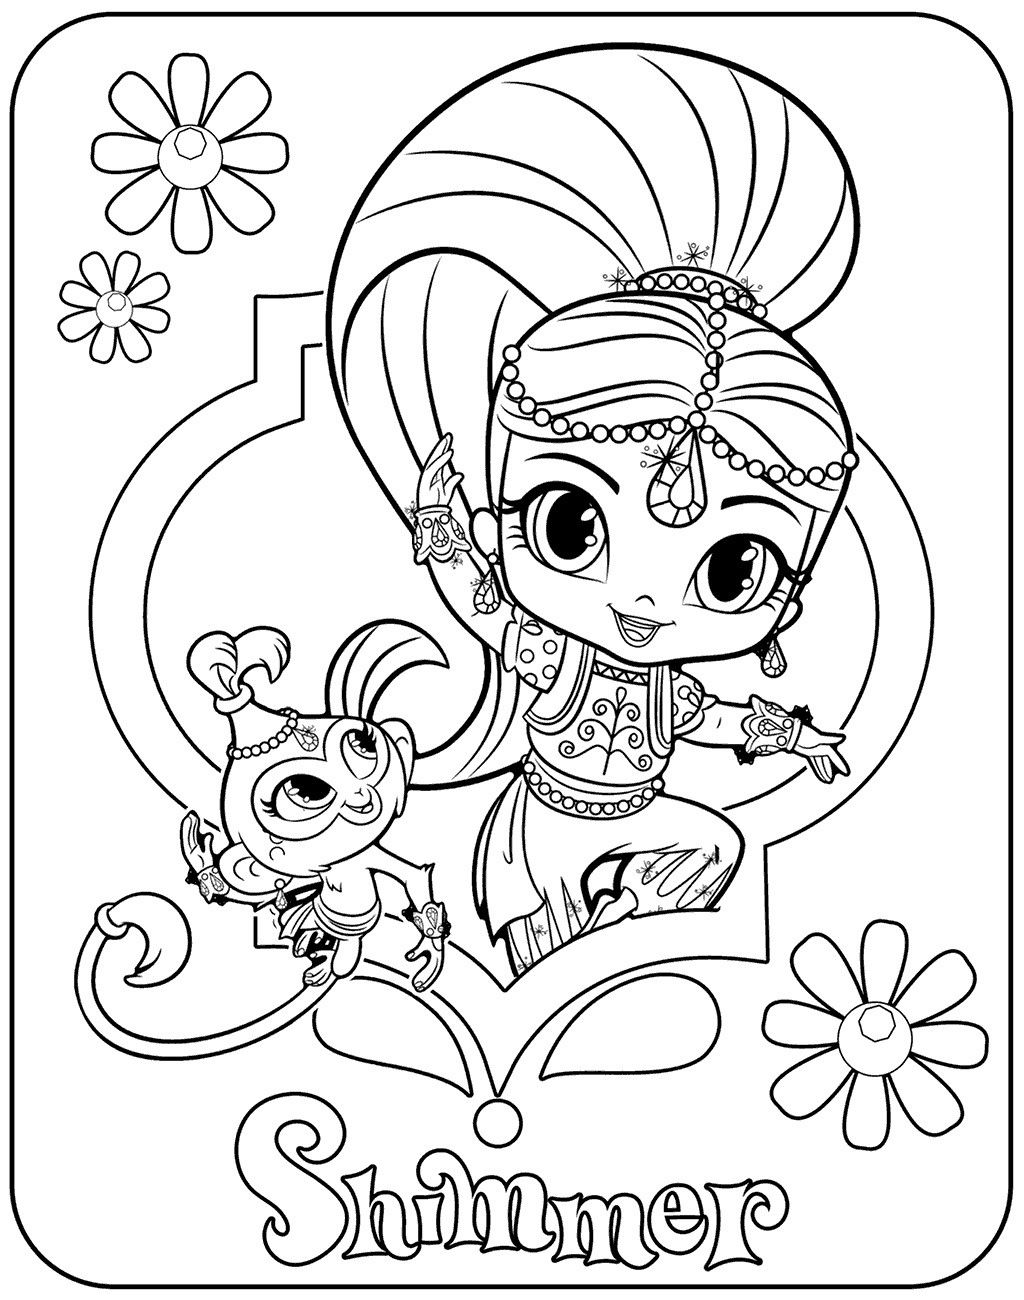 Shimmer Coloring Page